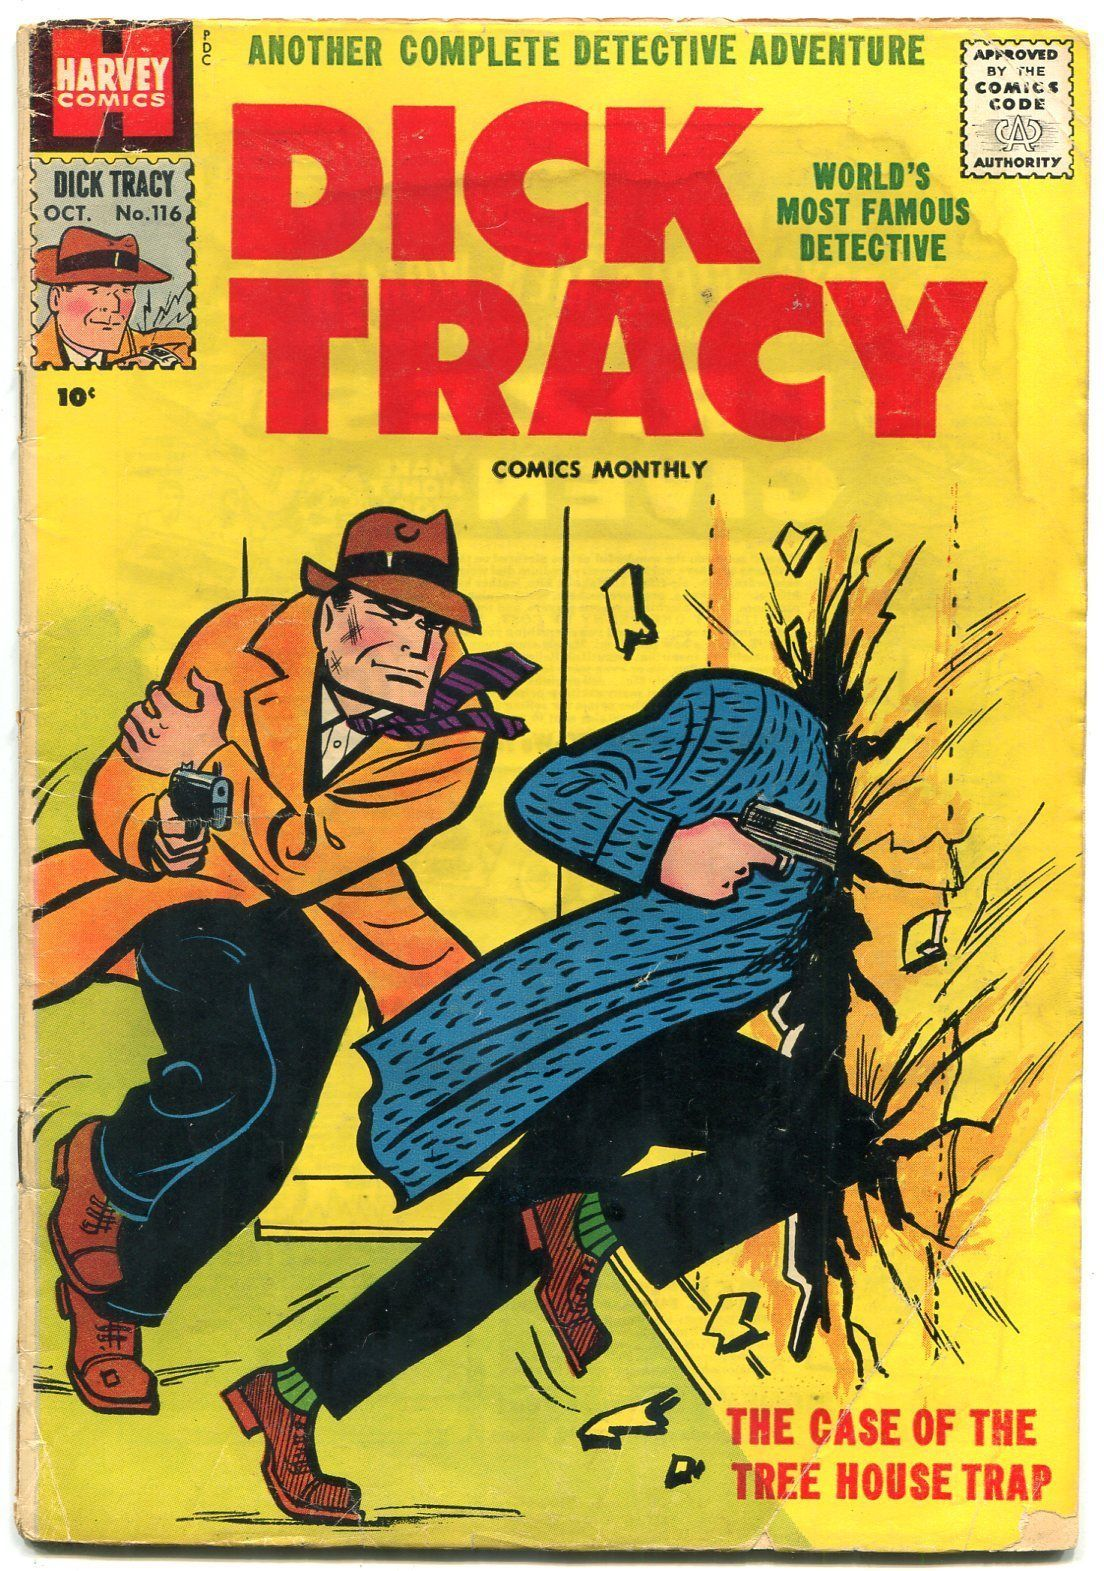 Dick Tracy #116 1957-CHESTER GOULD-HARVEY and similar items